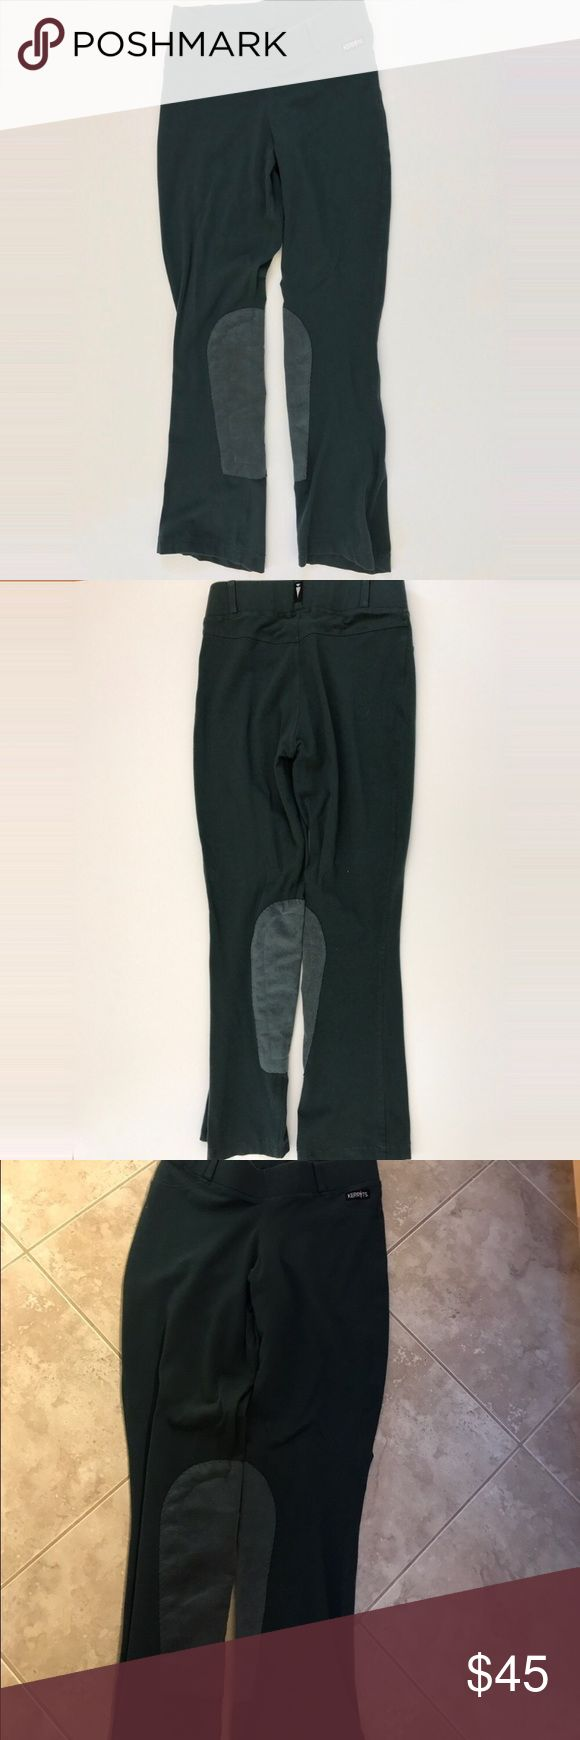 Kerrits boot cut knee patch riding breeches Green boot cut knee patch riding breeches. In perfect condition. Lightly loved Kerrits Pants